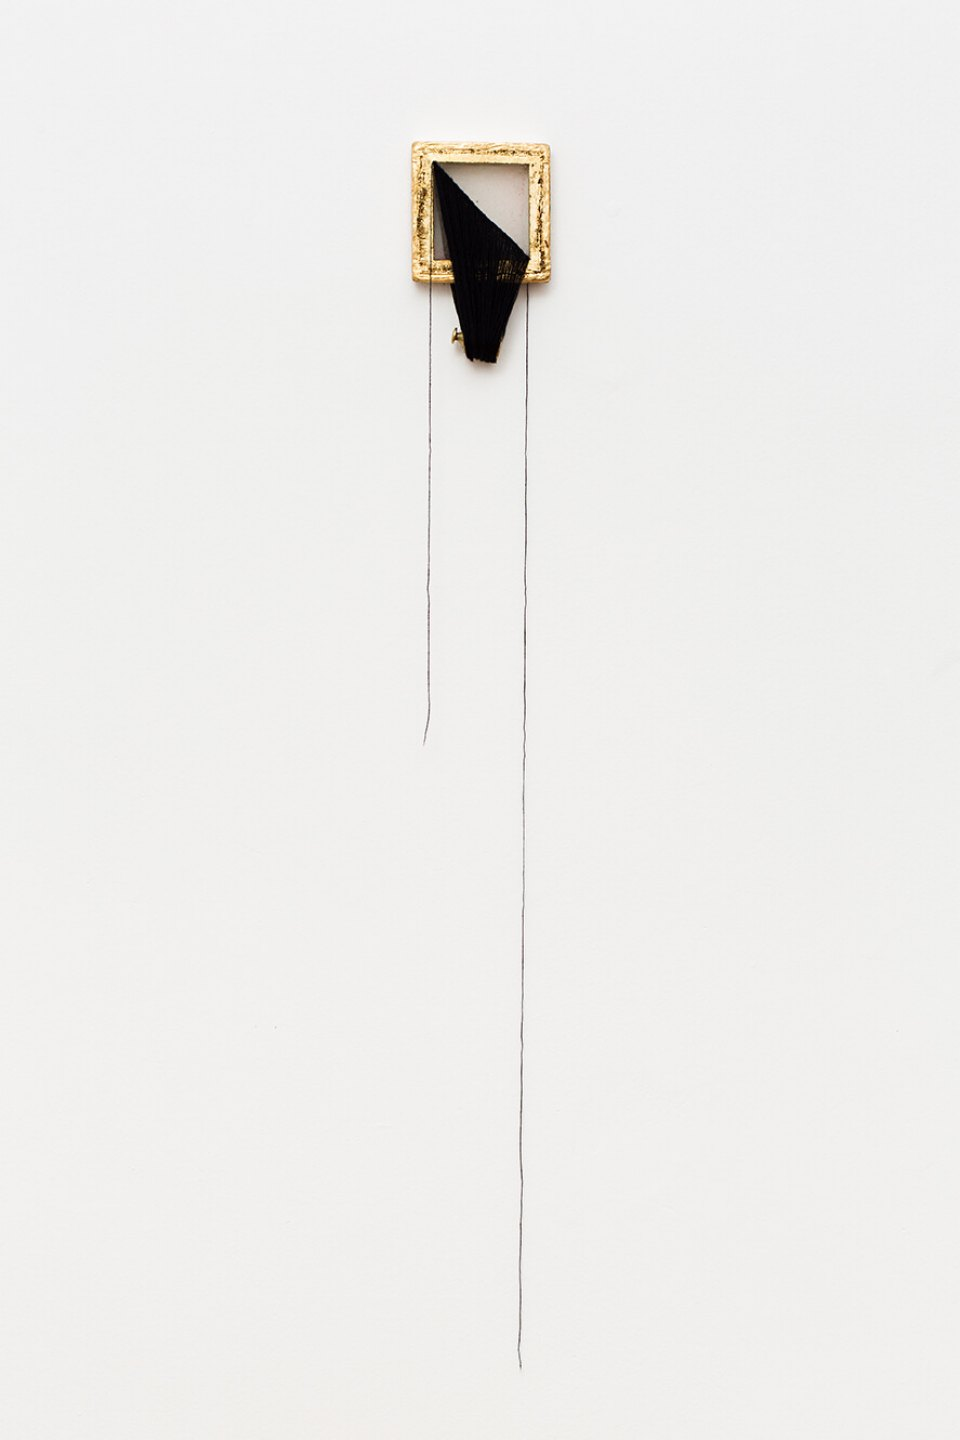 Paloma Bosquê, <em>untitled #2</em>, 2012/2013, frame used to make handmade paper, golden sheet, wool and scale weight, 90 × 13,5 cm - Mendes Wood DM